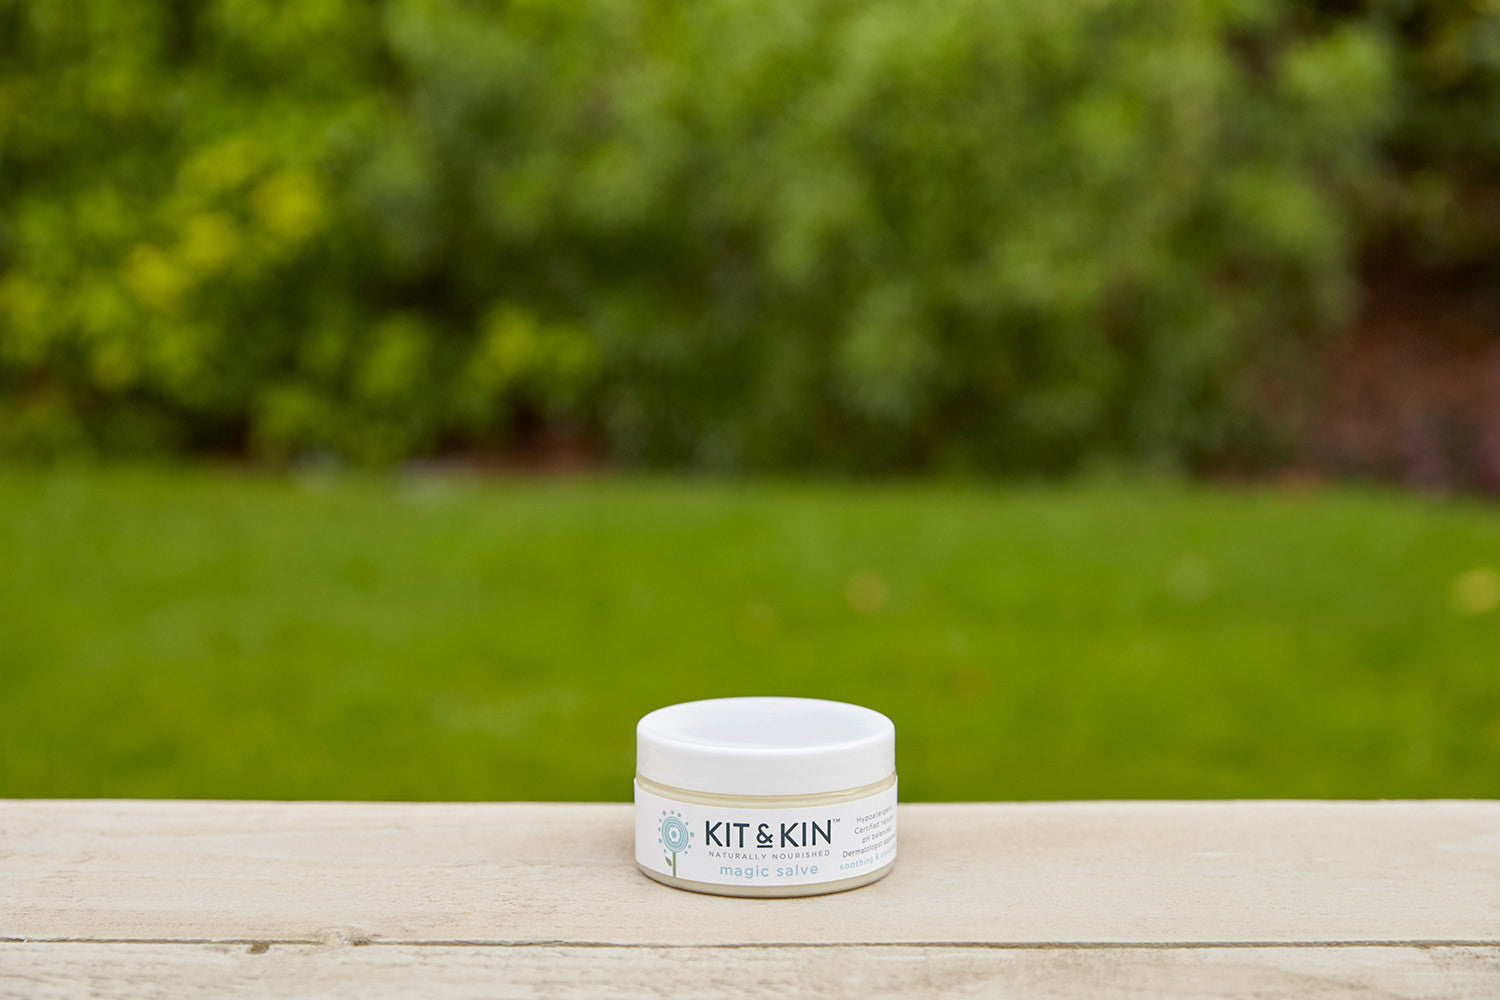 Kit & Kin Magic Salve | Maggie & Rose at Home